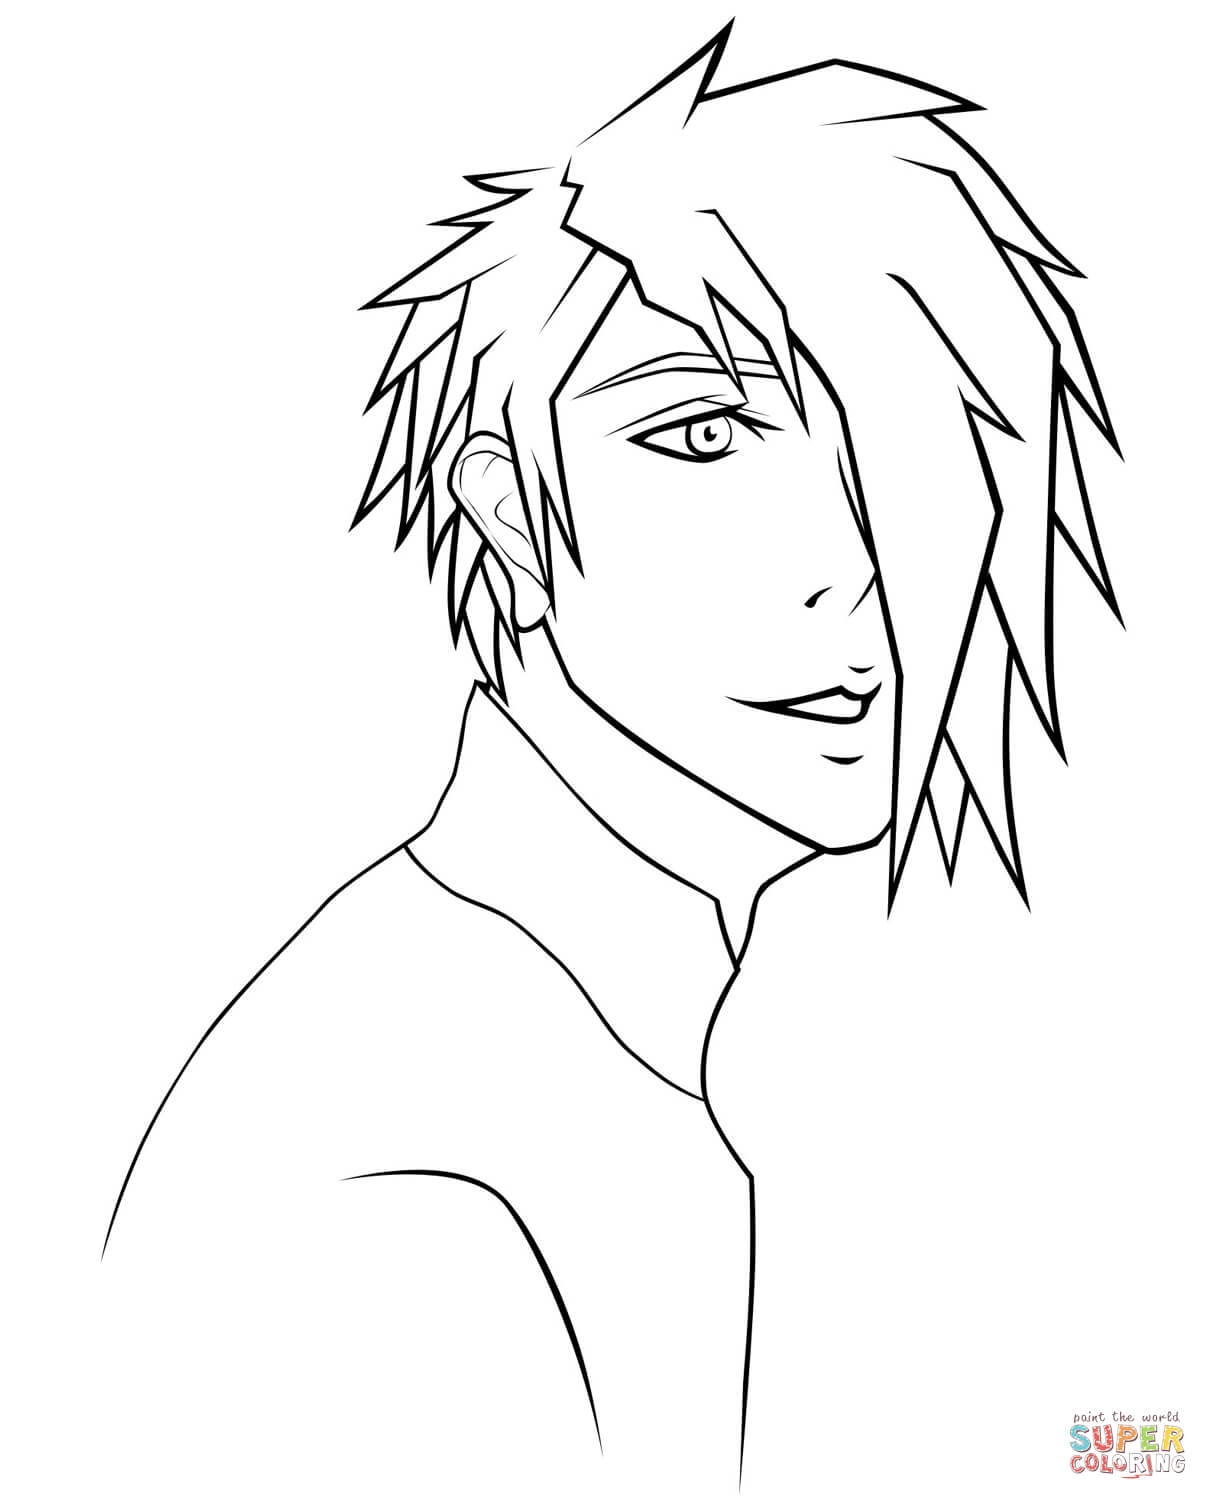 Guy Anime Drawing at GetDrawings.com | Free for personal use Guy ...